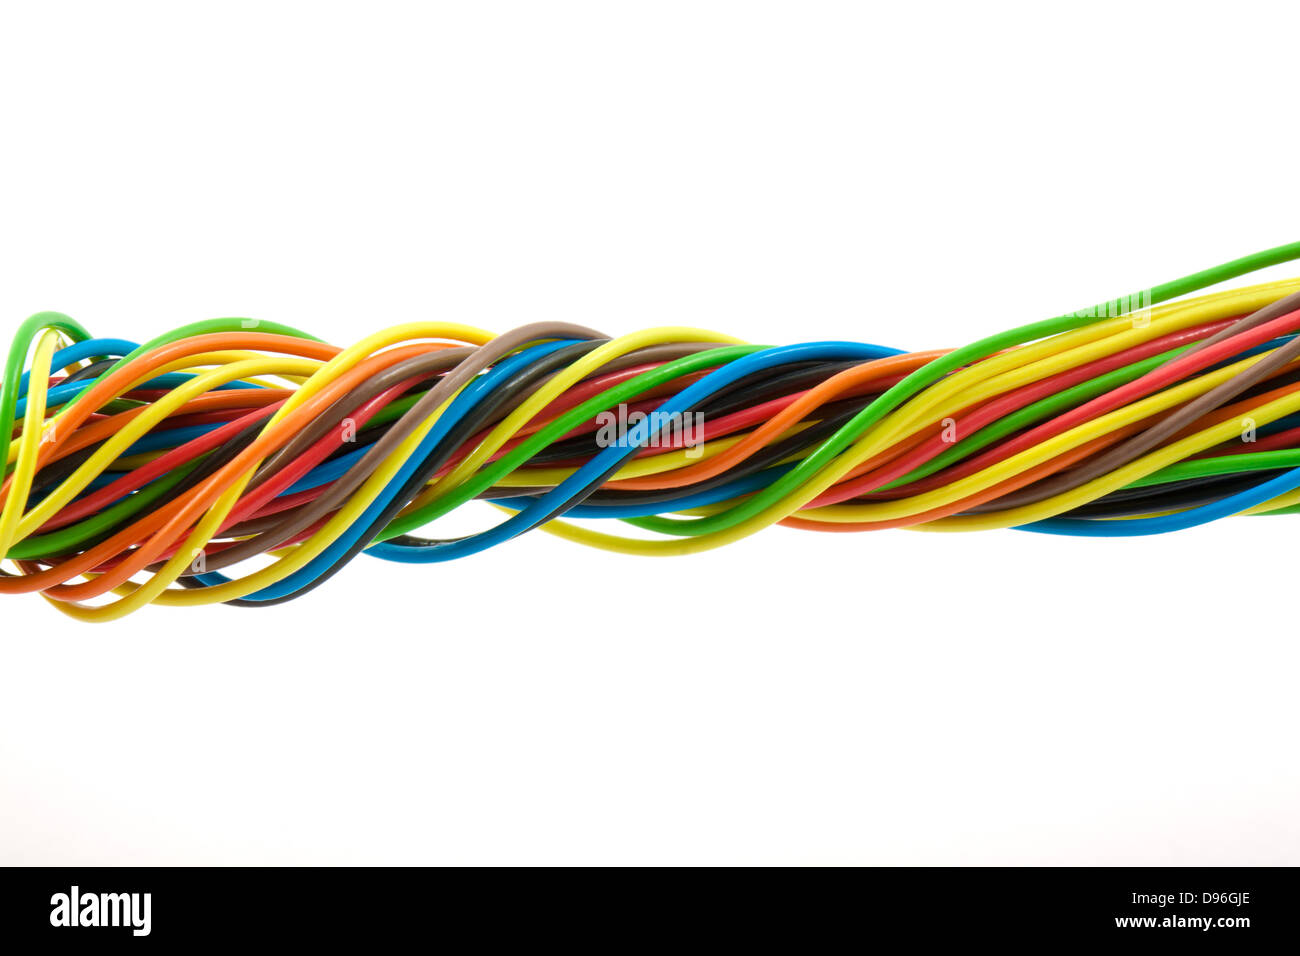 Twisted Wire Stock Photos & Twisted Wire Stock Images - Alamy